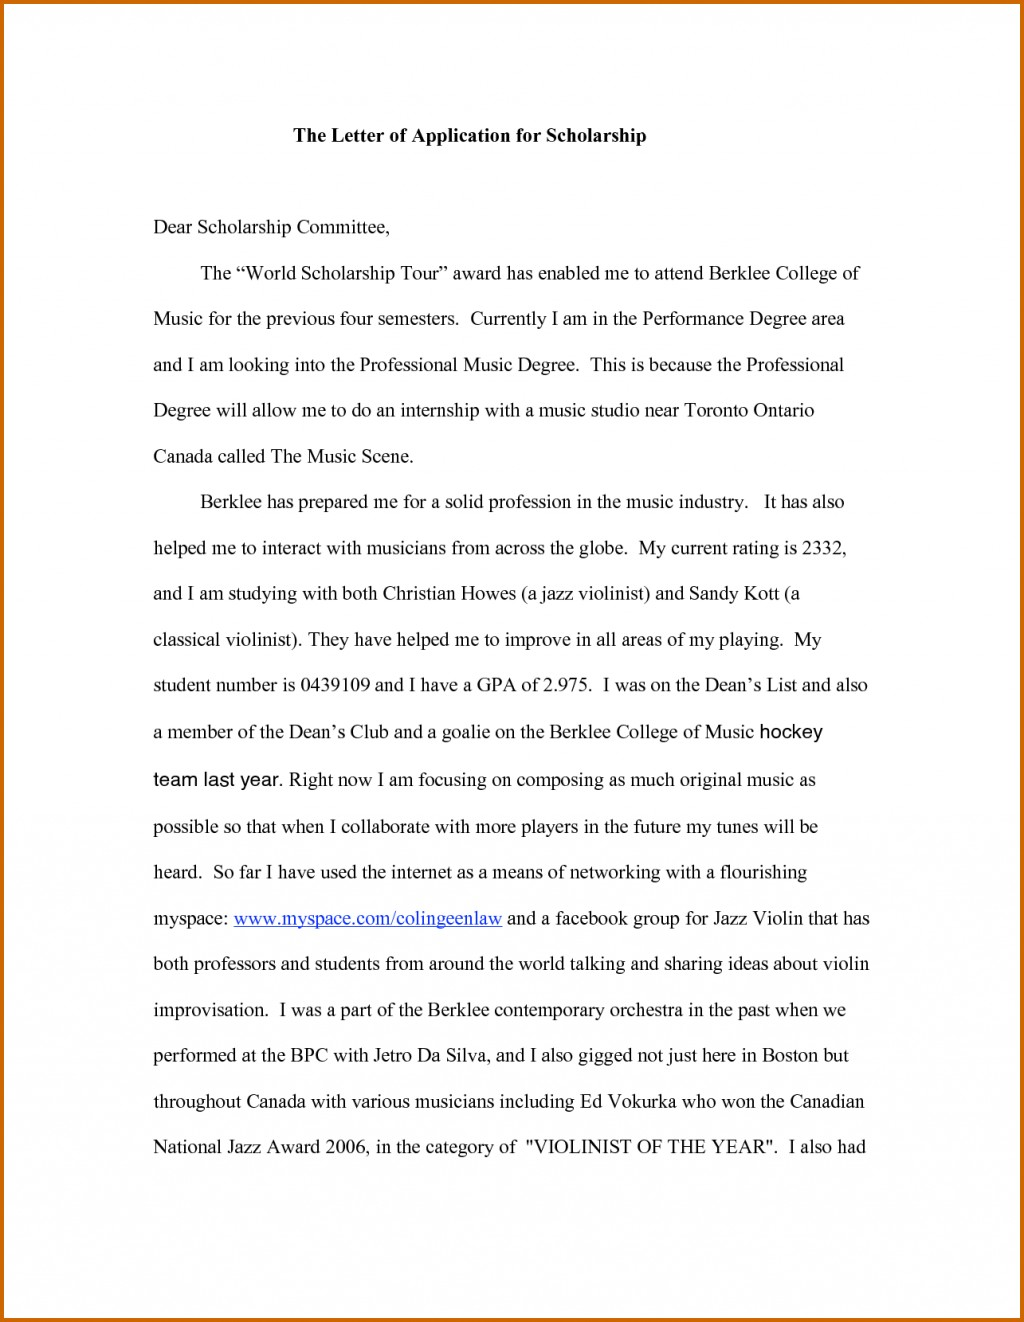 007 Essay Example College Scholarship How To Write Application For Best Topics List Template Tips Large